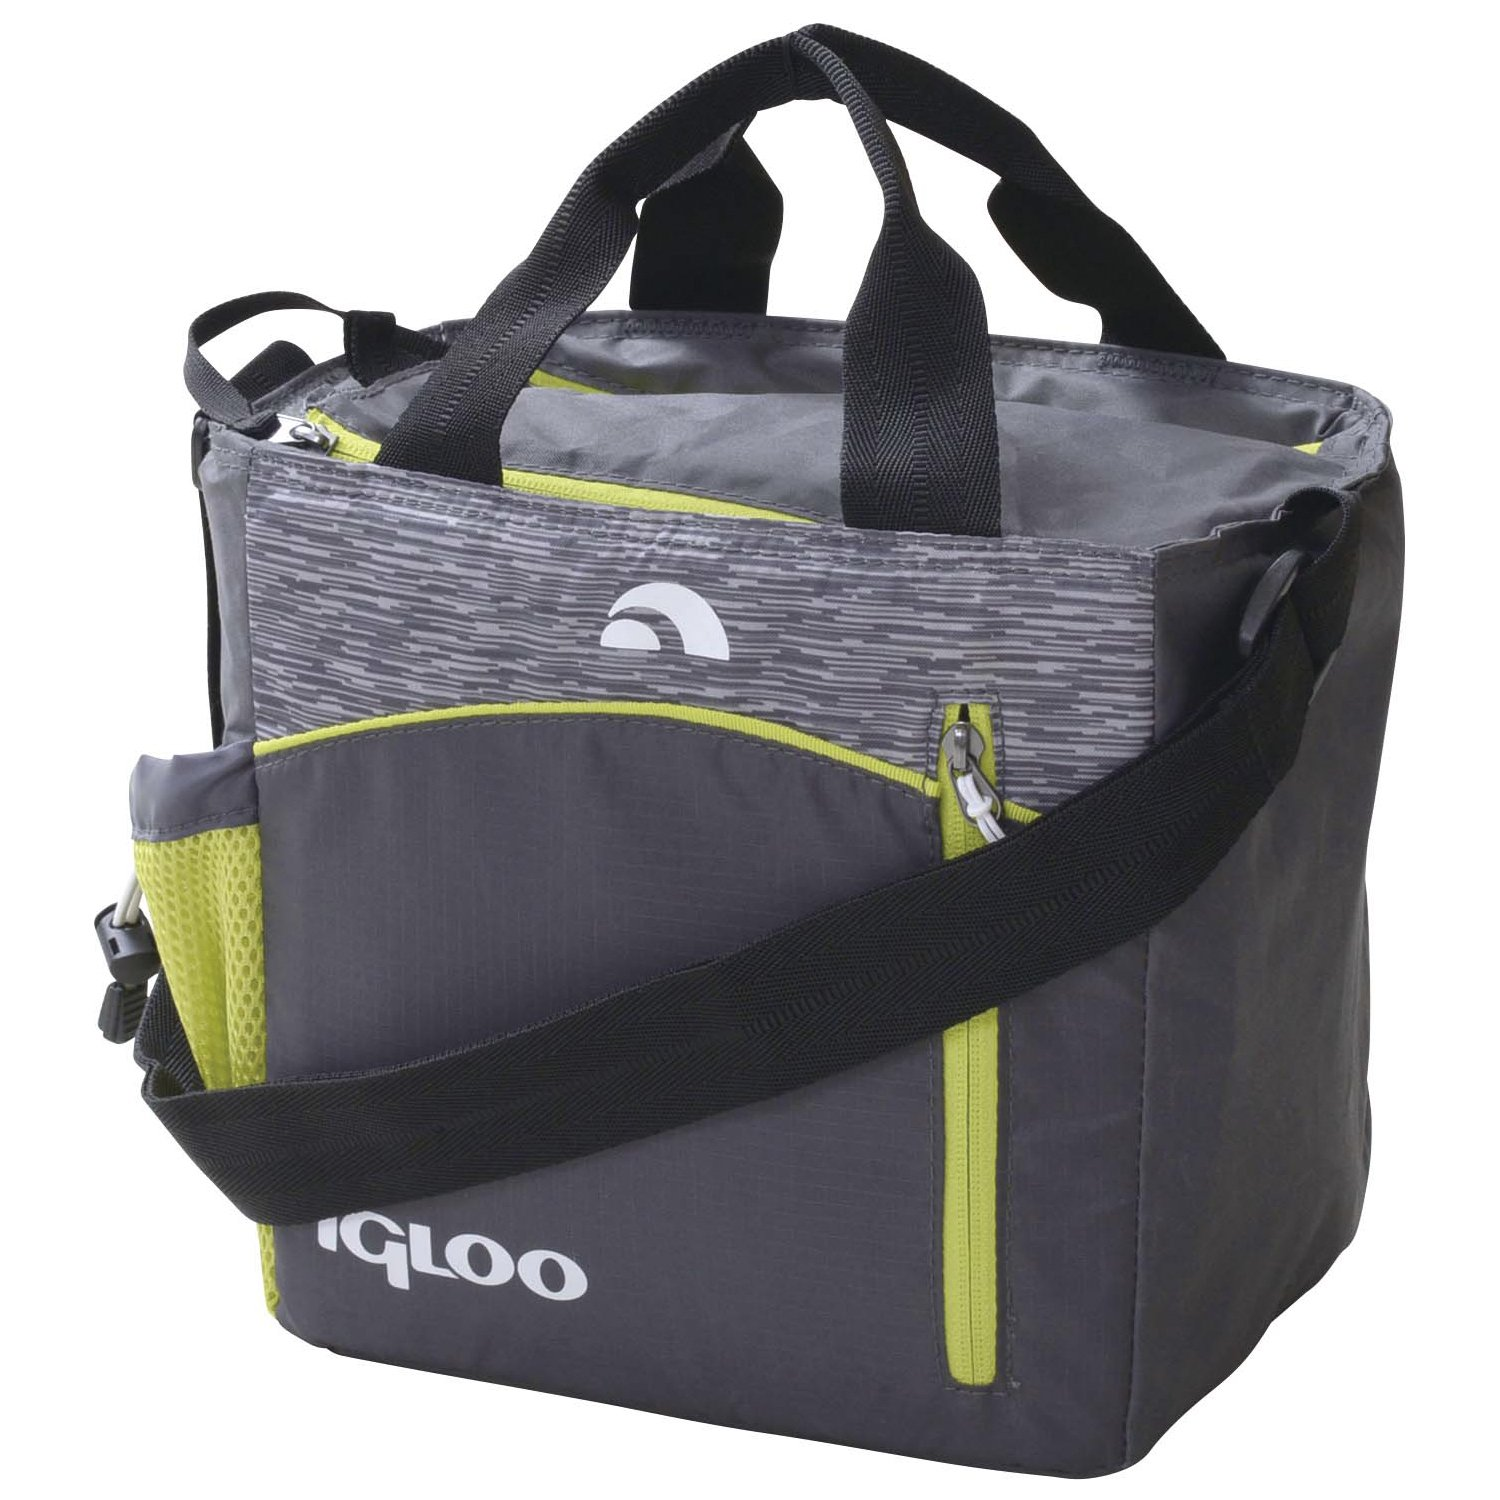 Igloo 00059956 Stowe Mini City 9 Insulated Soft Cooler (9 Cans), Grau/Lime by Igloo